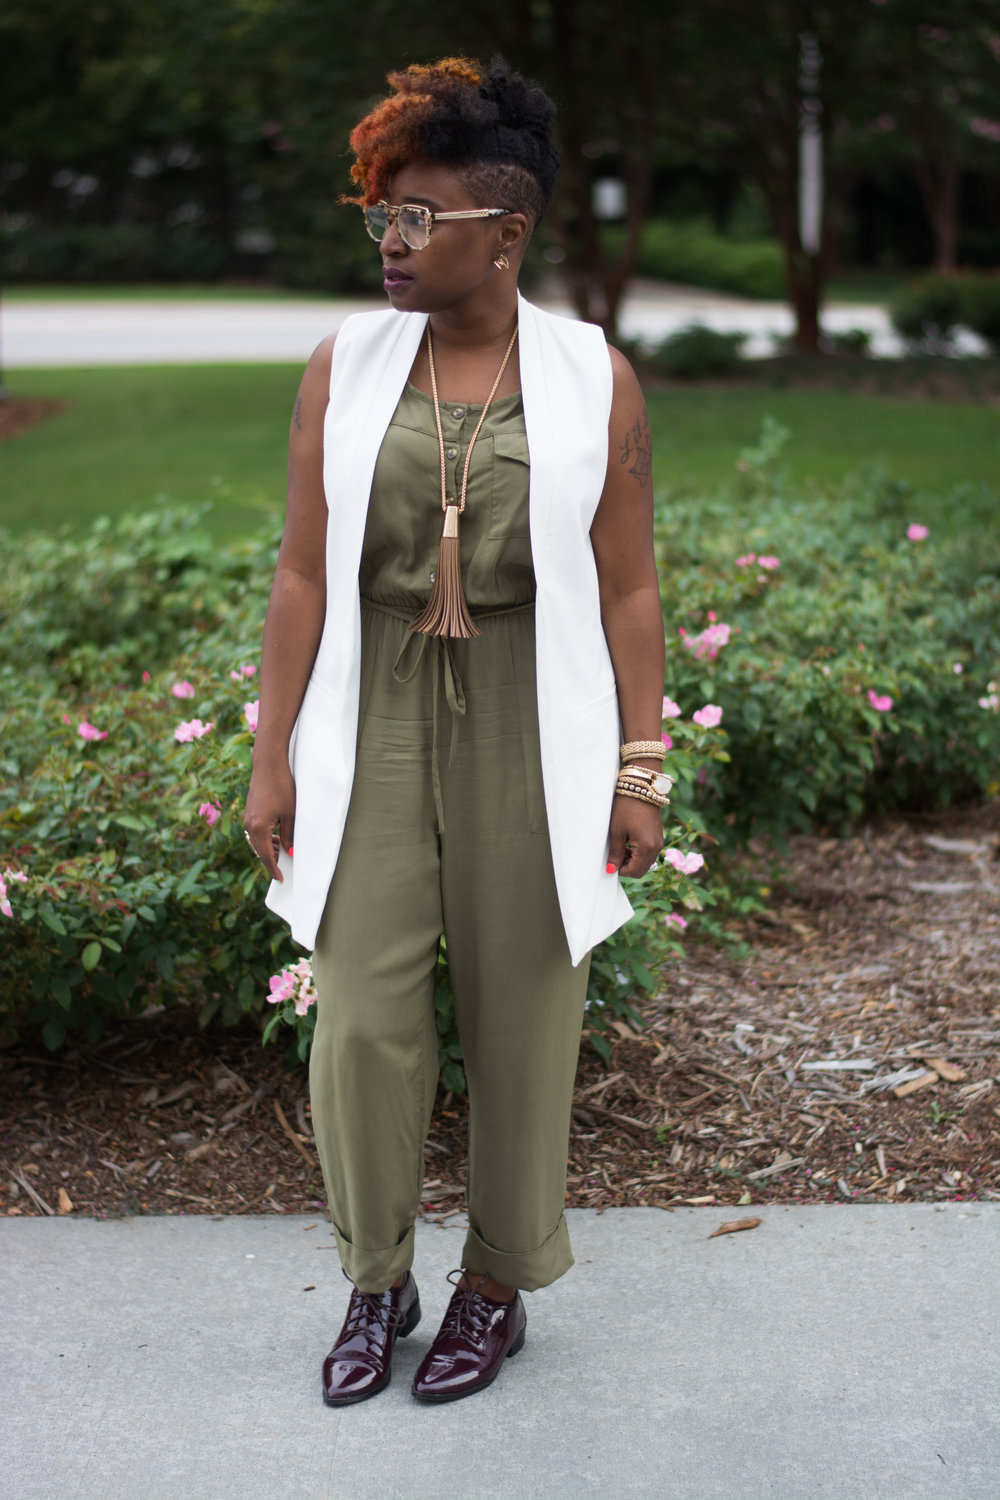 Melodie Stewart, The Style Klazit, Target Vest, Justfab Olive Jumpsuit, Shoedazzle Wine oxfords, Atlanta wardrobe style blogger